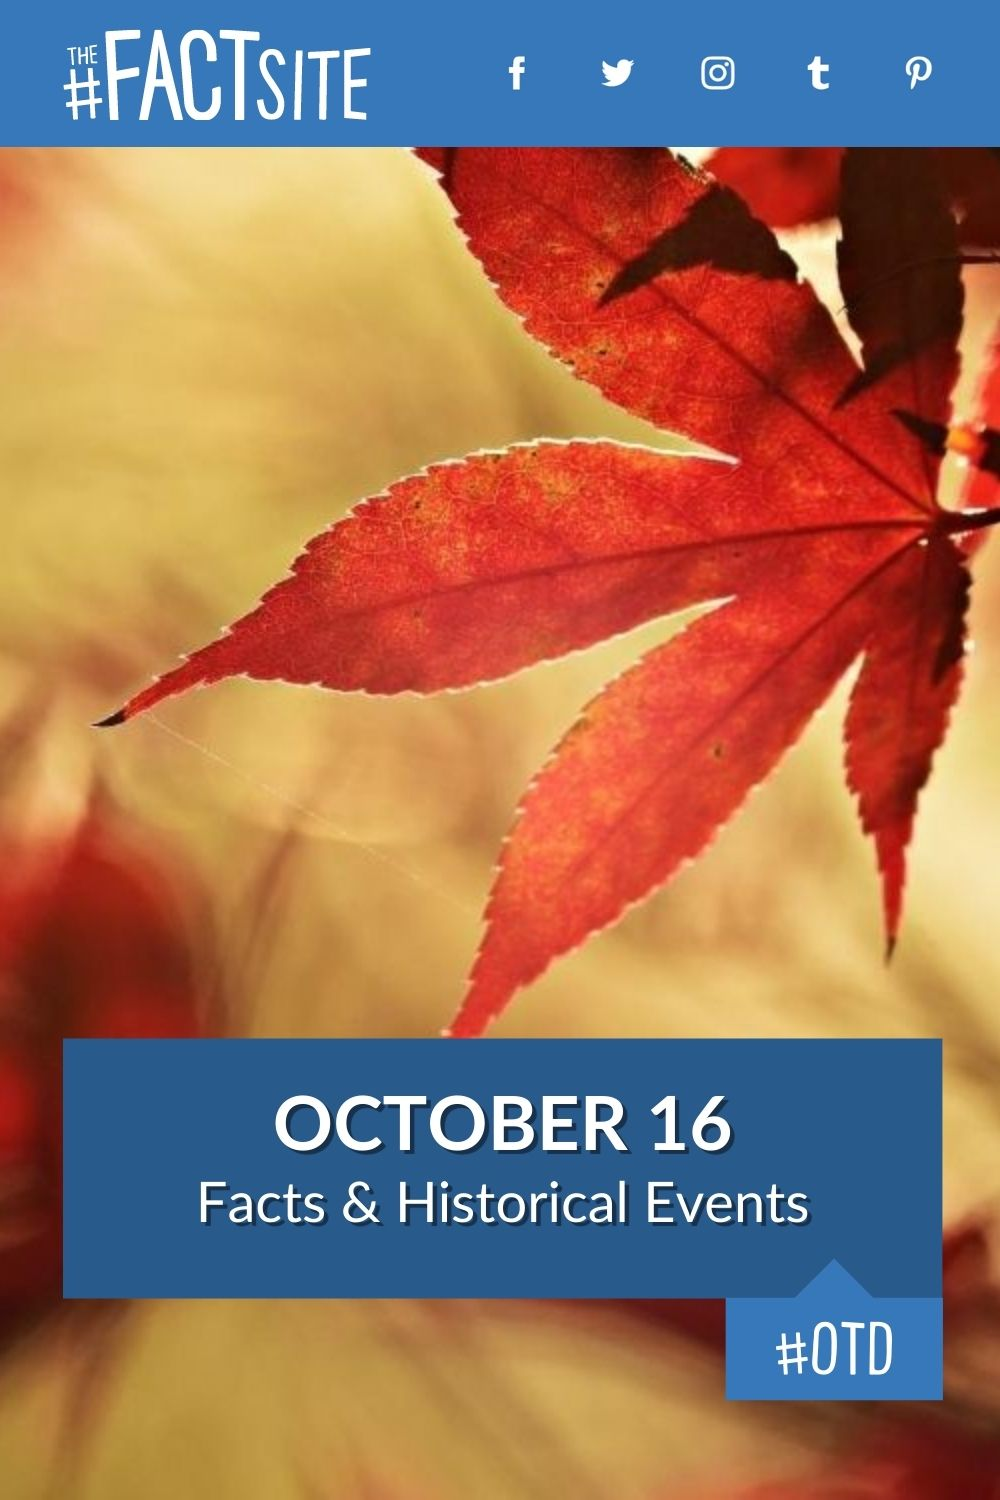 Facts & Historic Events That Happened on October 16